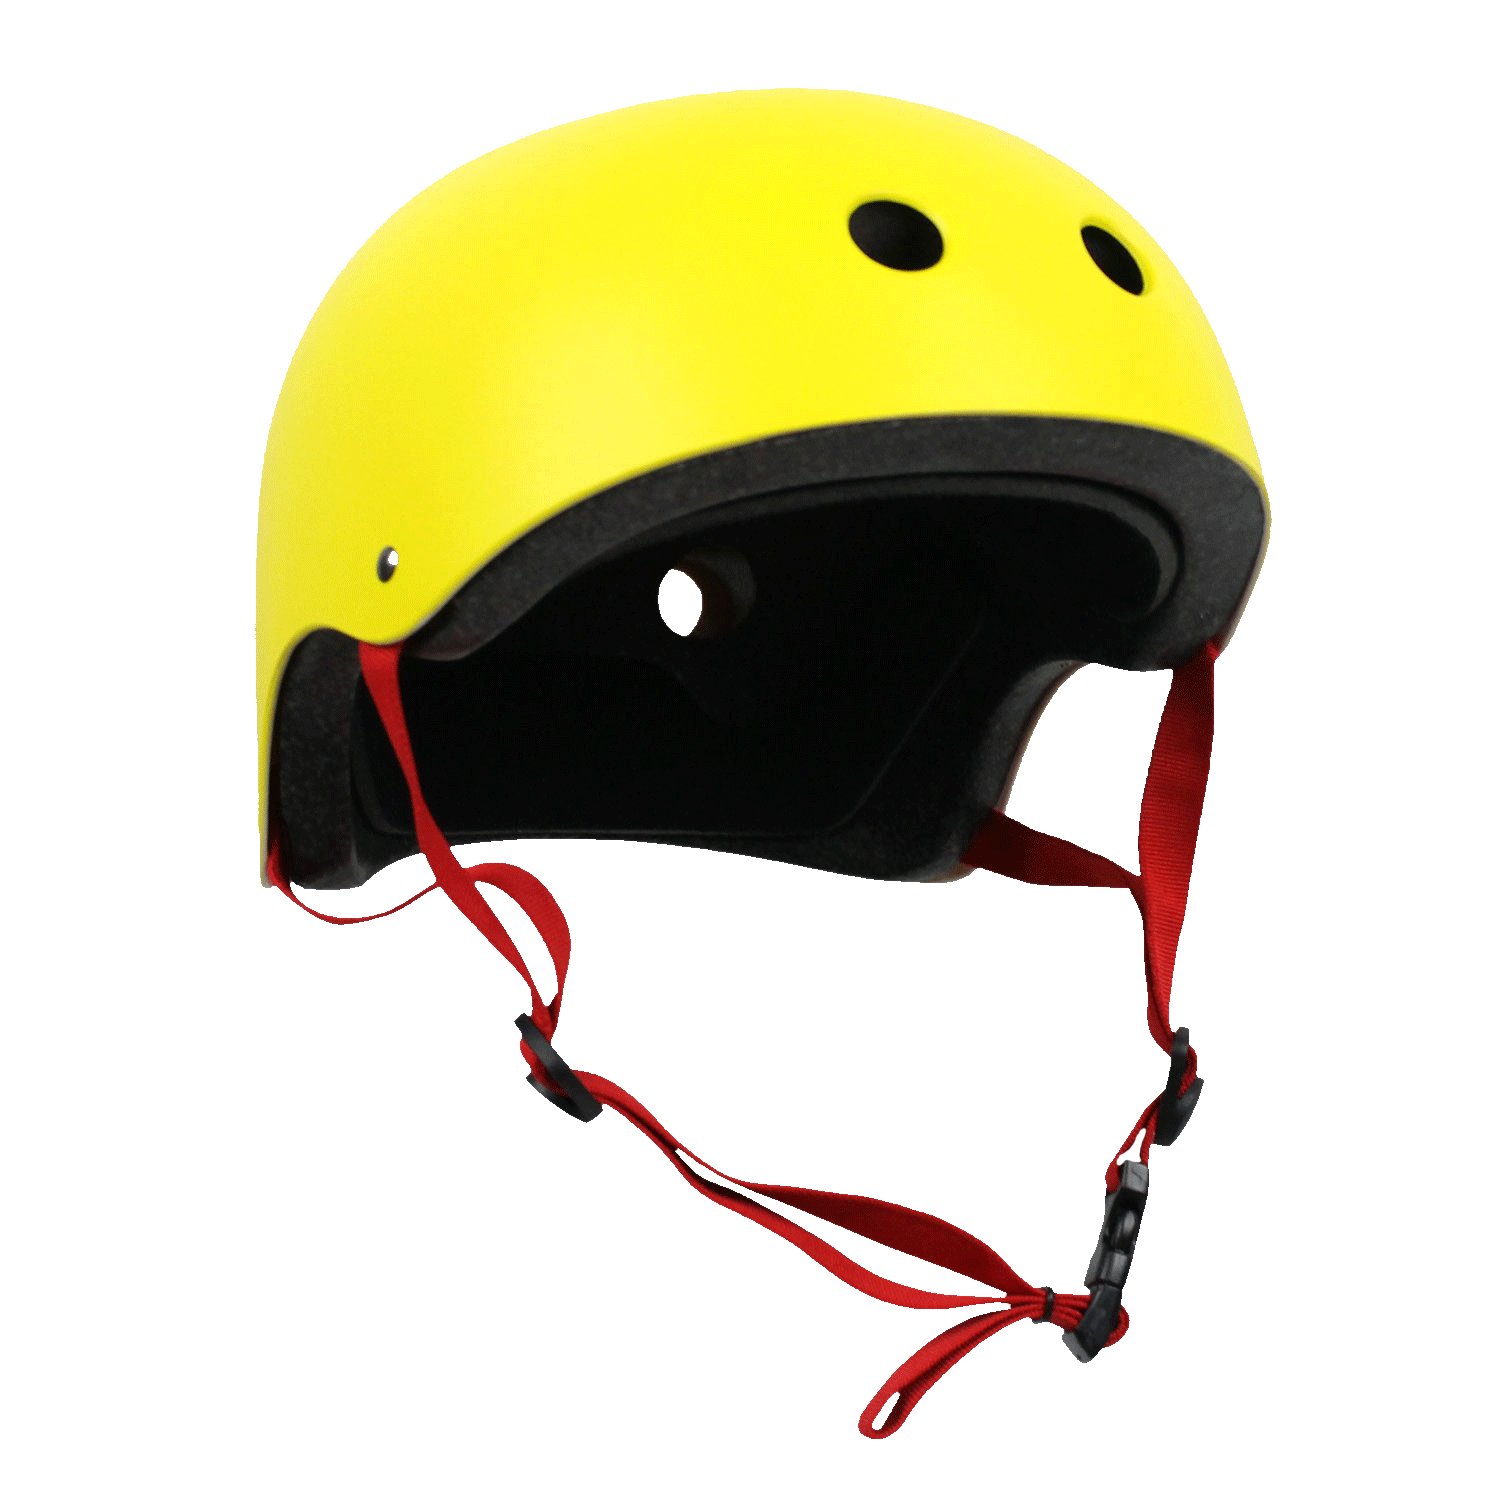 Krown Adult Skateboard Helmet Yellow/Red OSFA